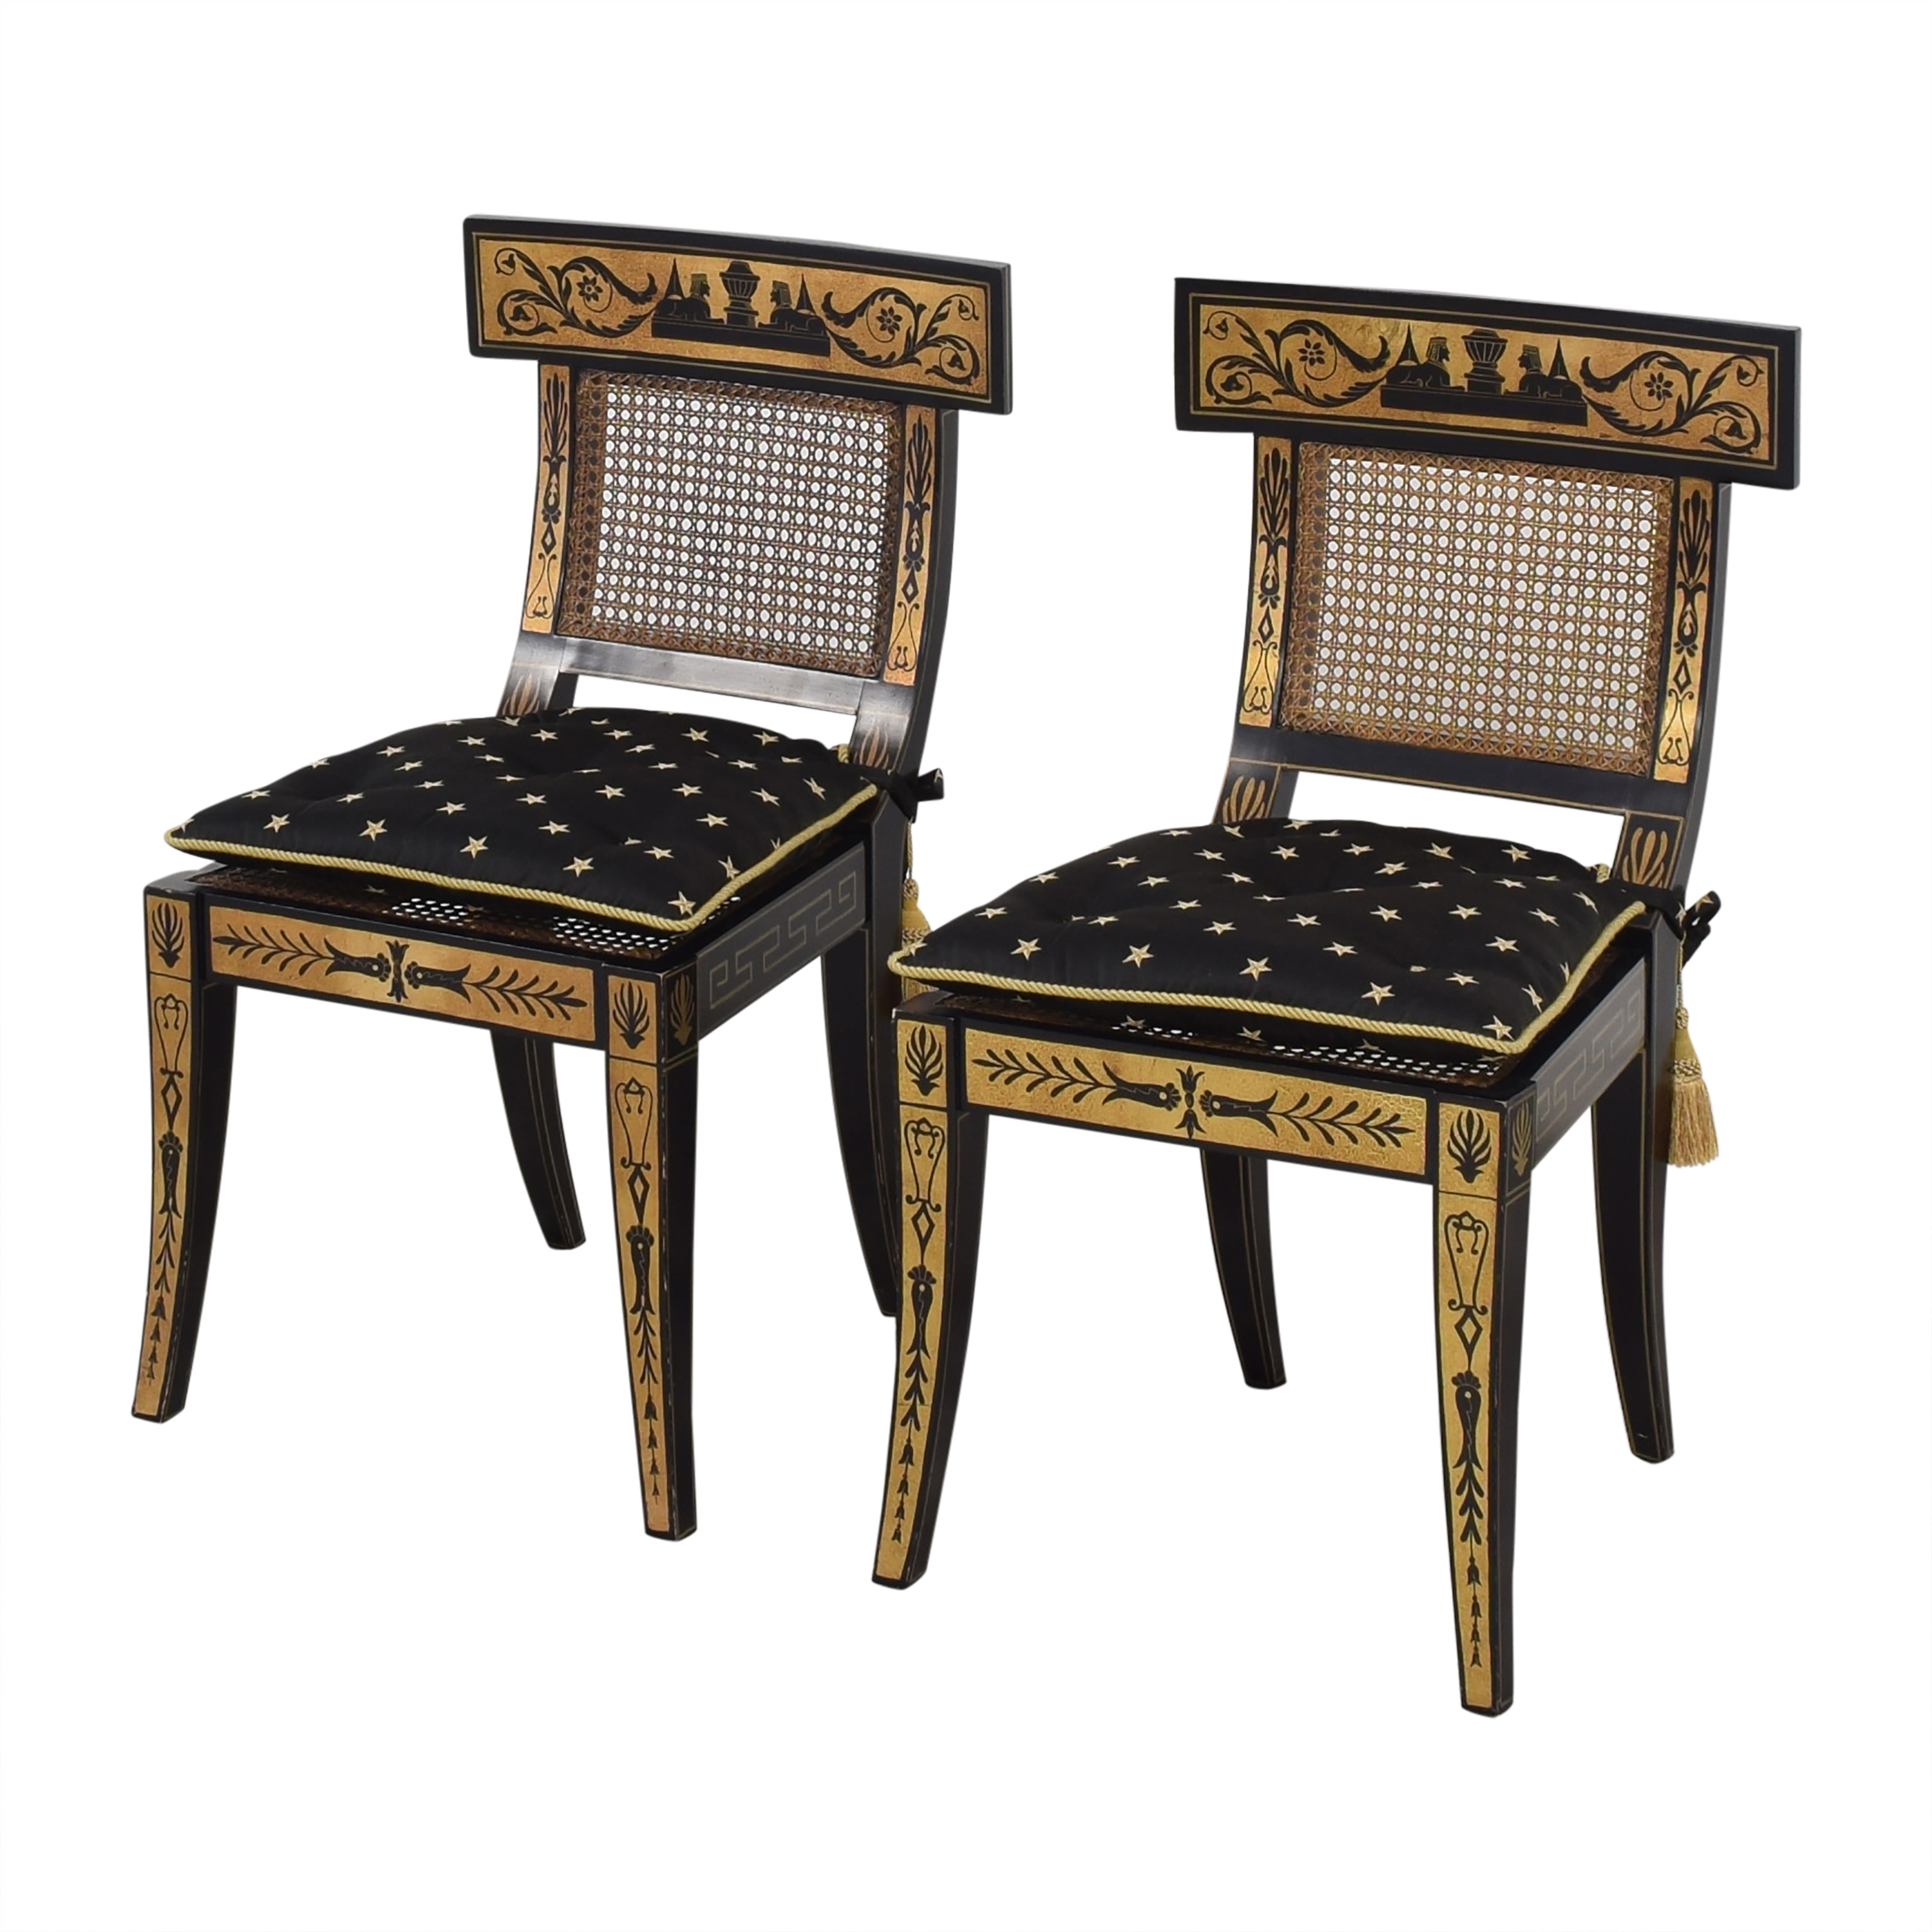 Maitland-Smith Maitland-Smith Decorative Dining Chairs with Cushions black and gold